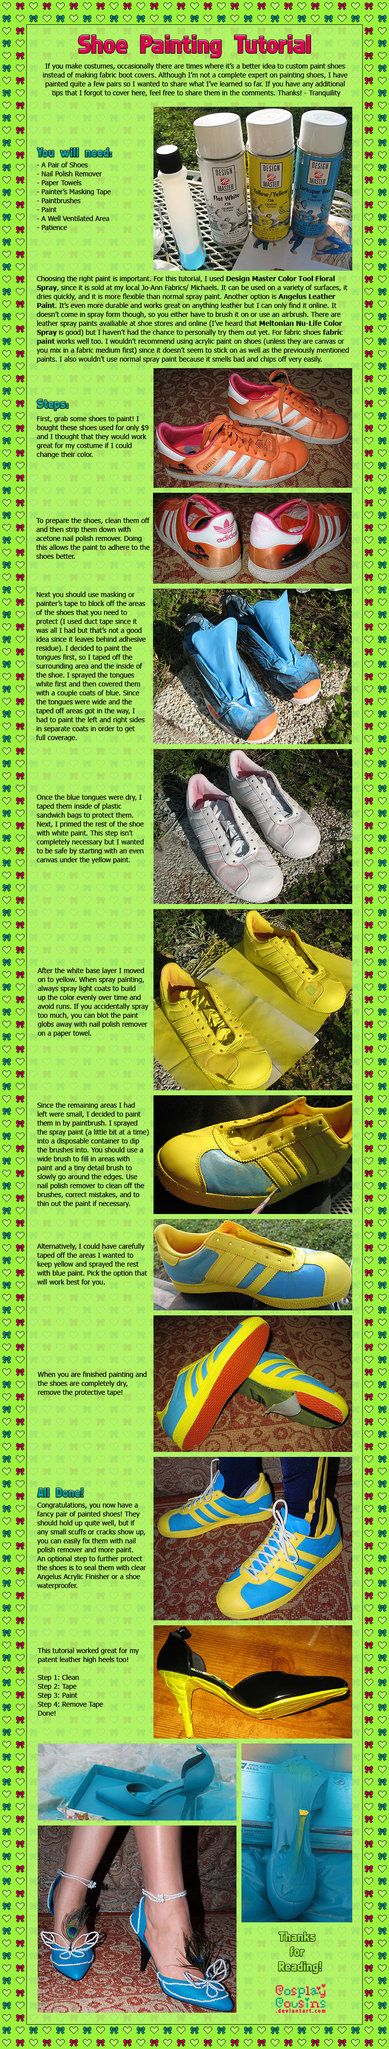 Shoe Painting Tutorial by CosplayCousins on deviantART I really need to find something that doesn't crack! Suggestions??